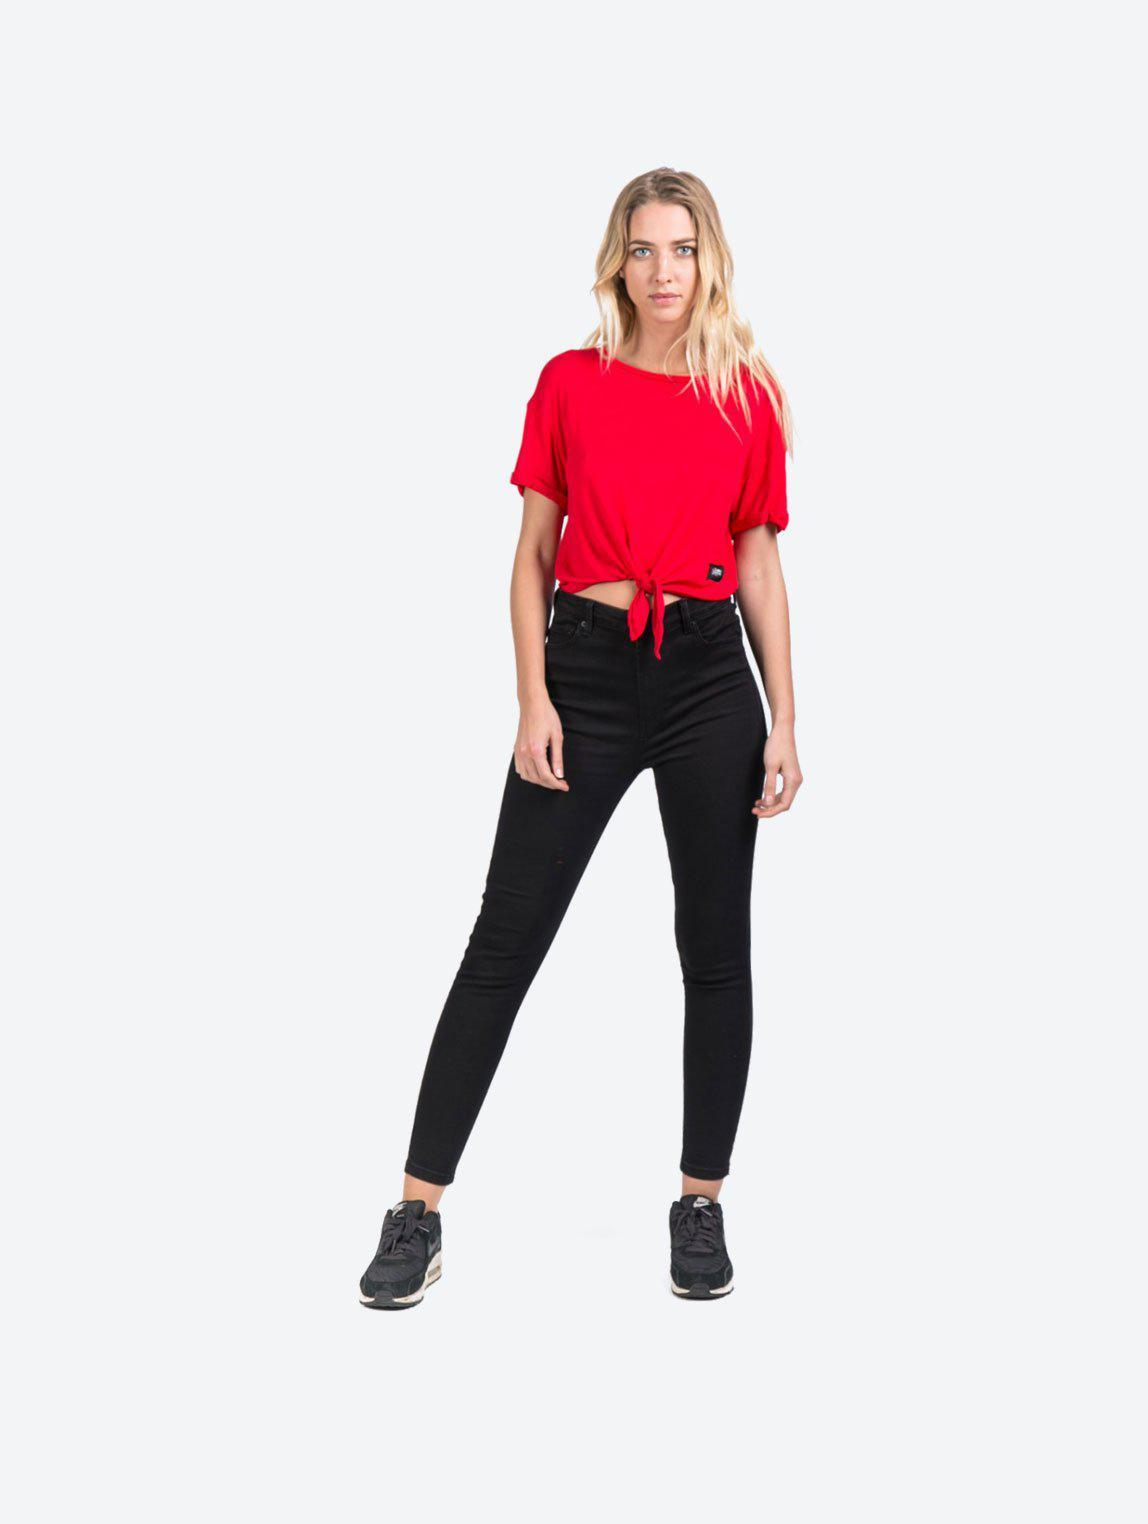 KNOT CROP TOP TSHIRT